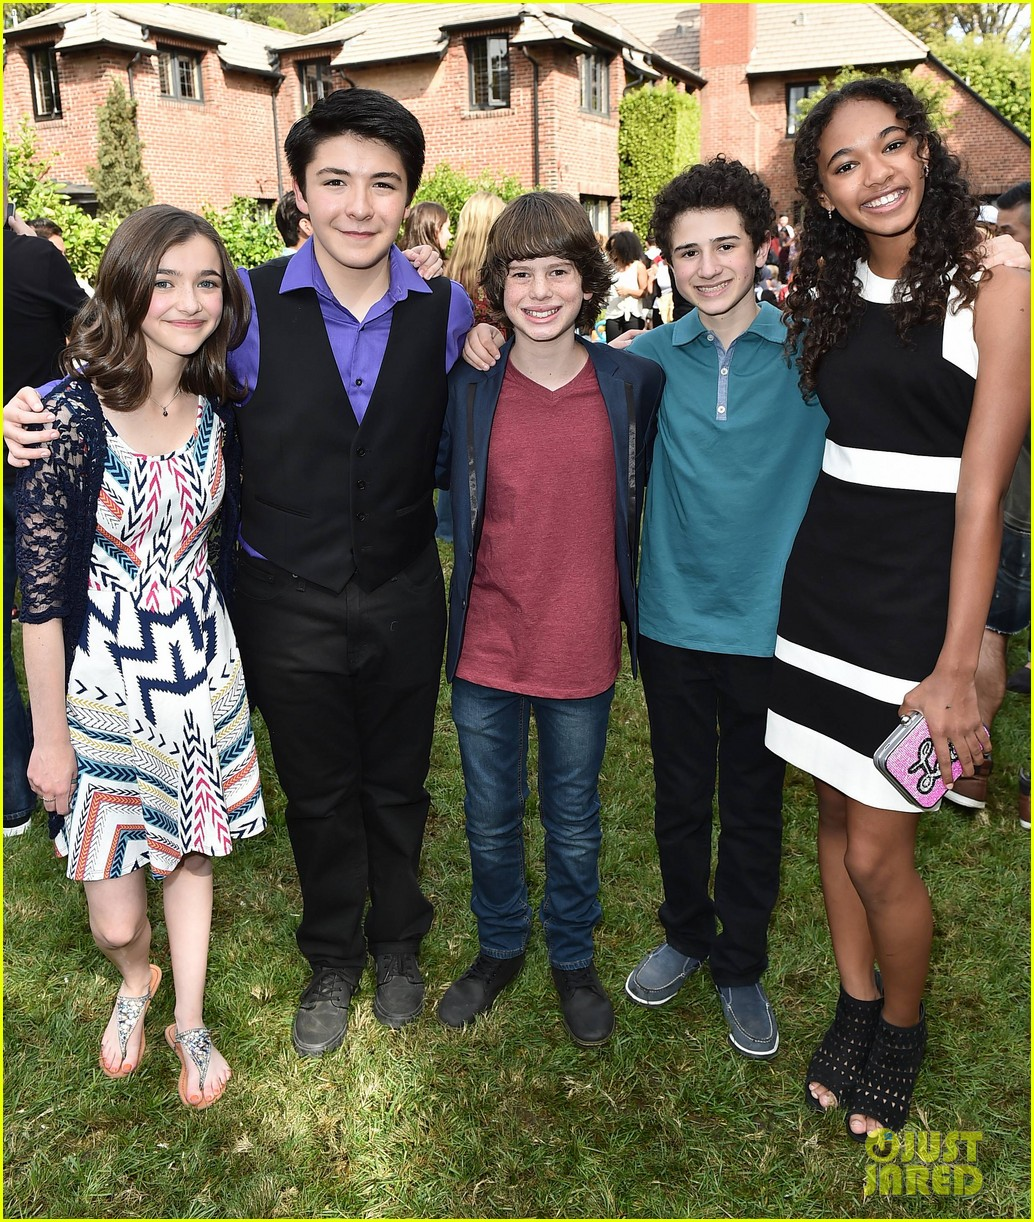 gortimer gibbons cast just jared jr fall fun day 08